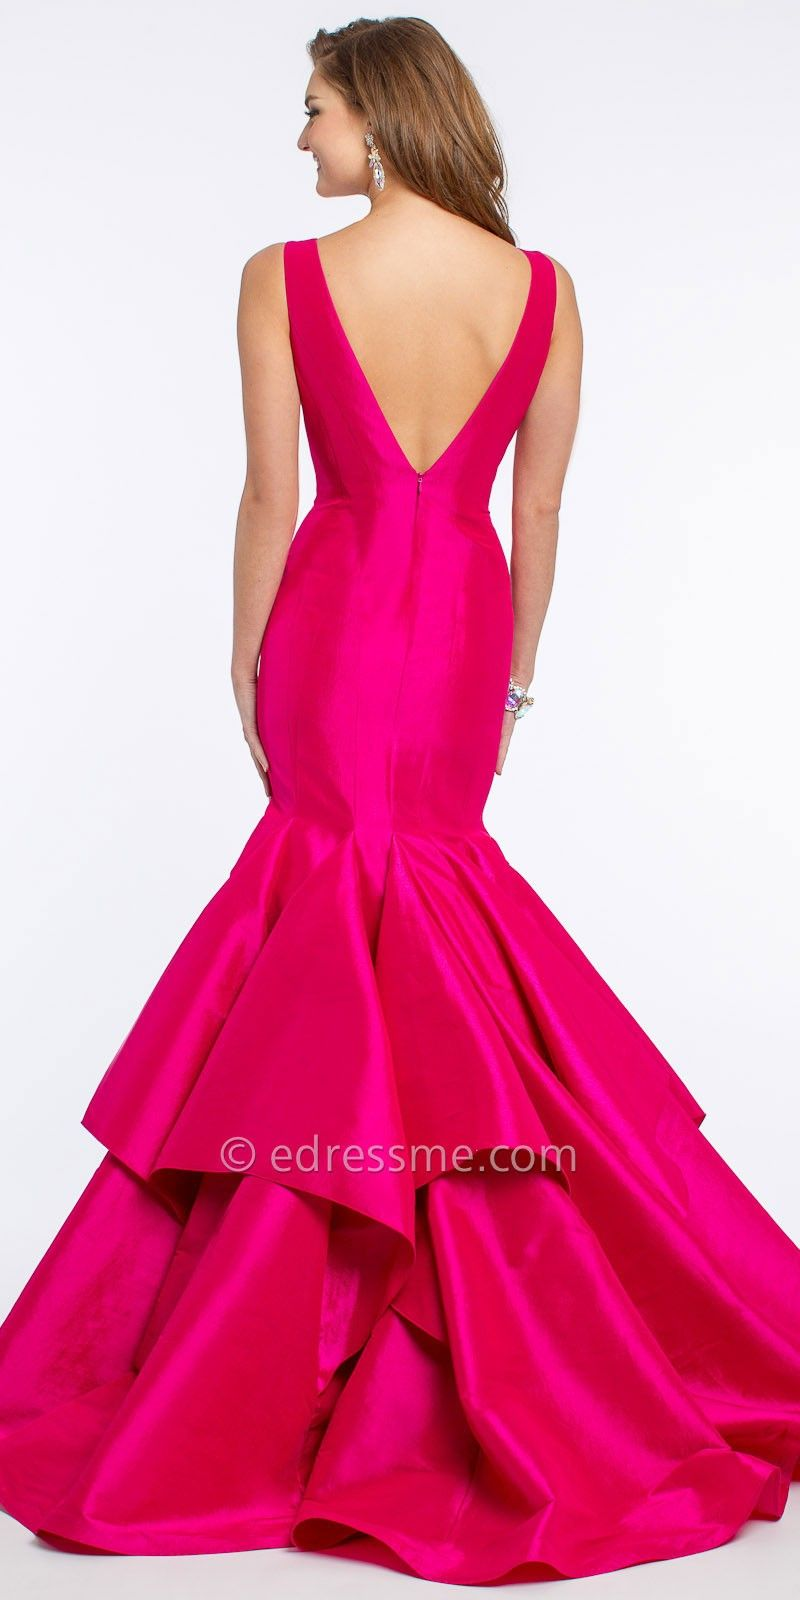 V-Neck Taffeta Mermaid Prom Dress by Jovani | My style | Pinterest ...